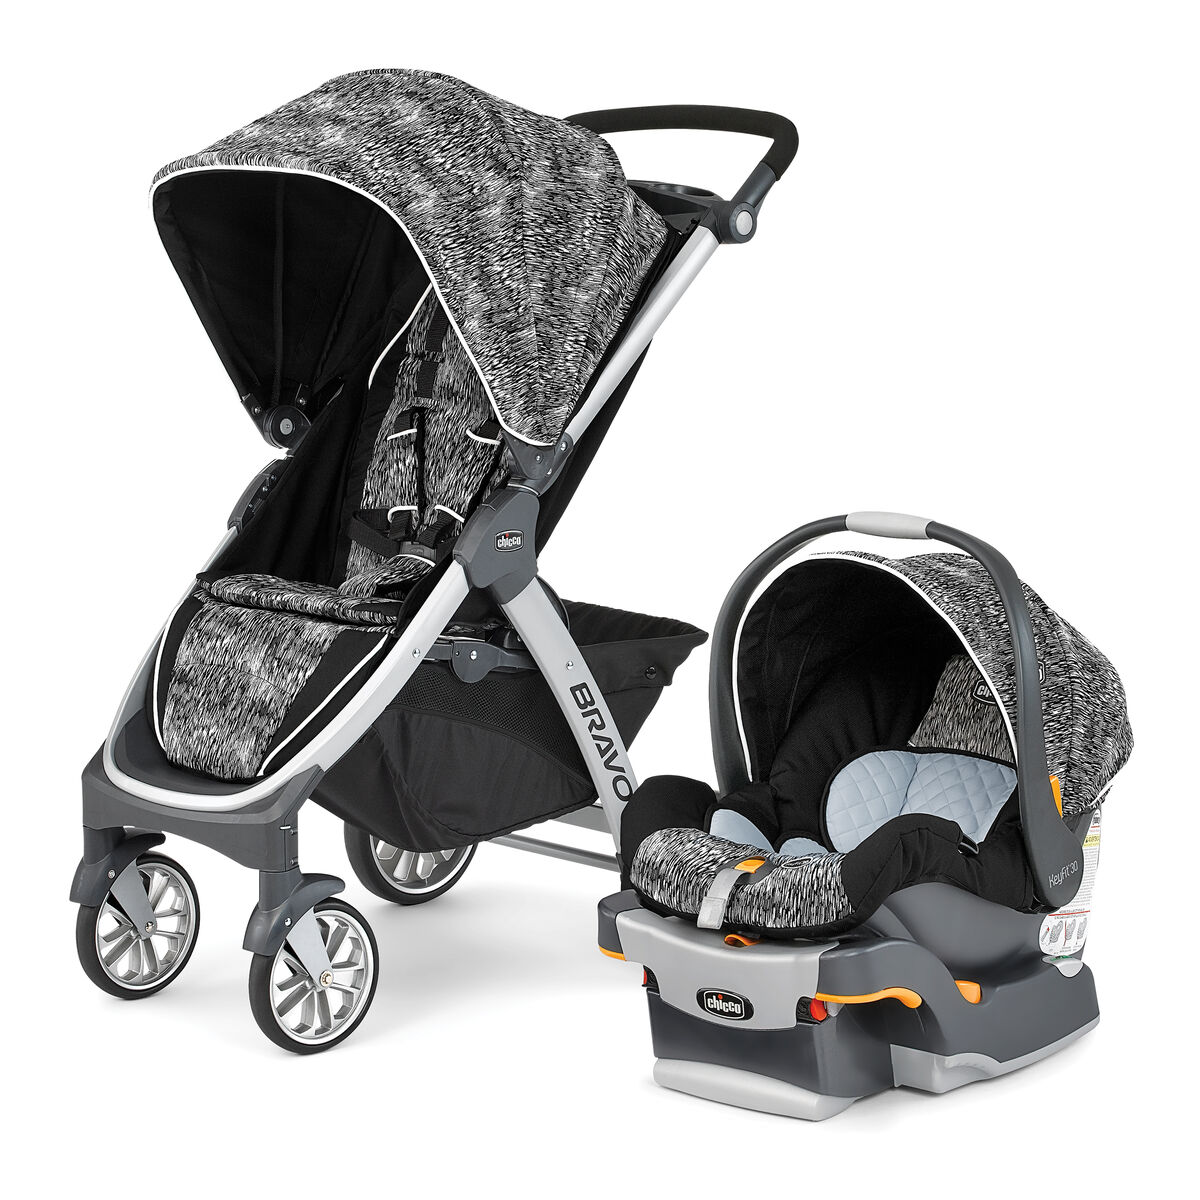 Chicco polly se high chair perseo modern high chairs and booster - Bravo Trio System Rainfallbravo Trio System Rainfall